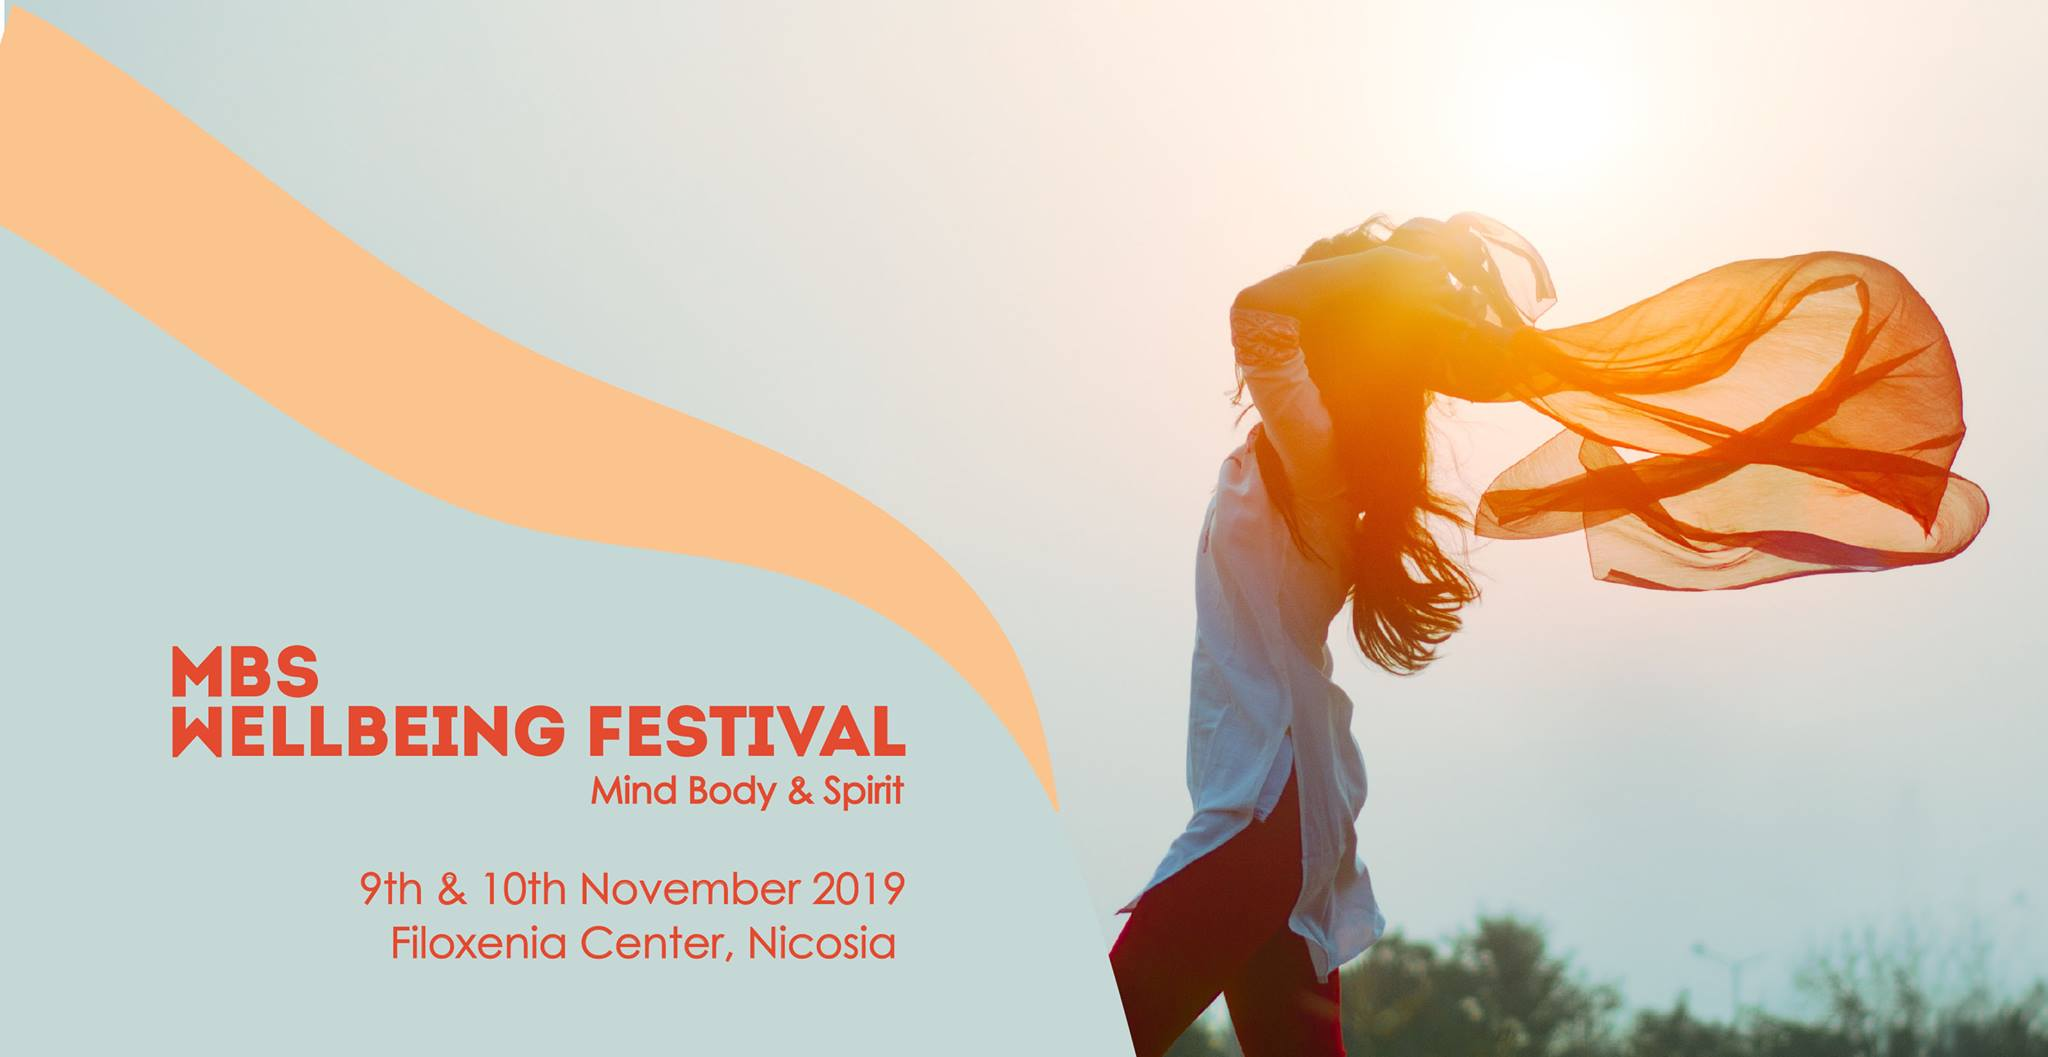 The Mind, Body & Spirit Wellbeing Festival Nicosia